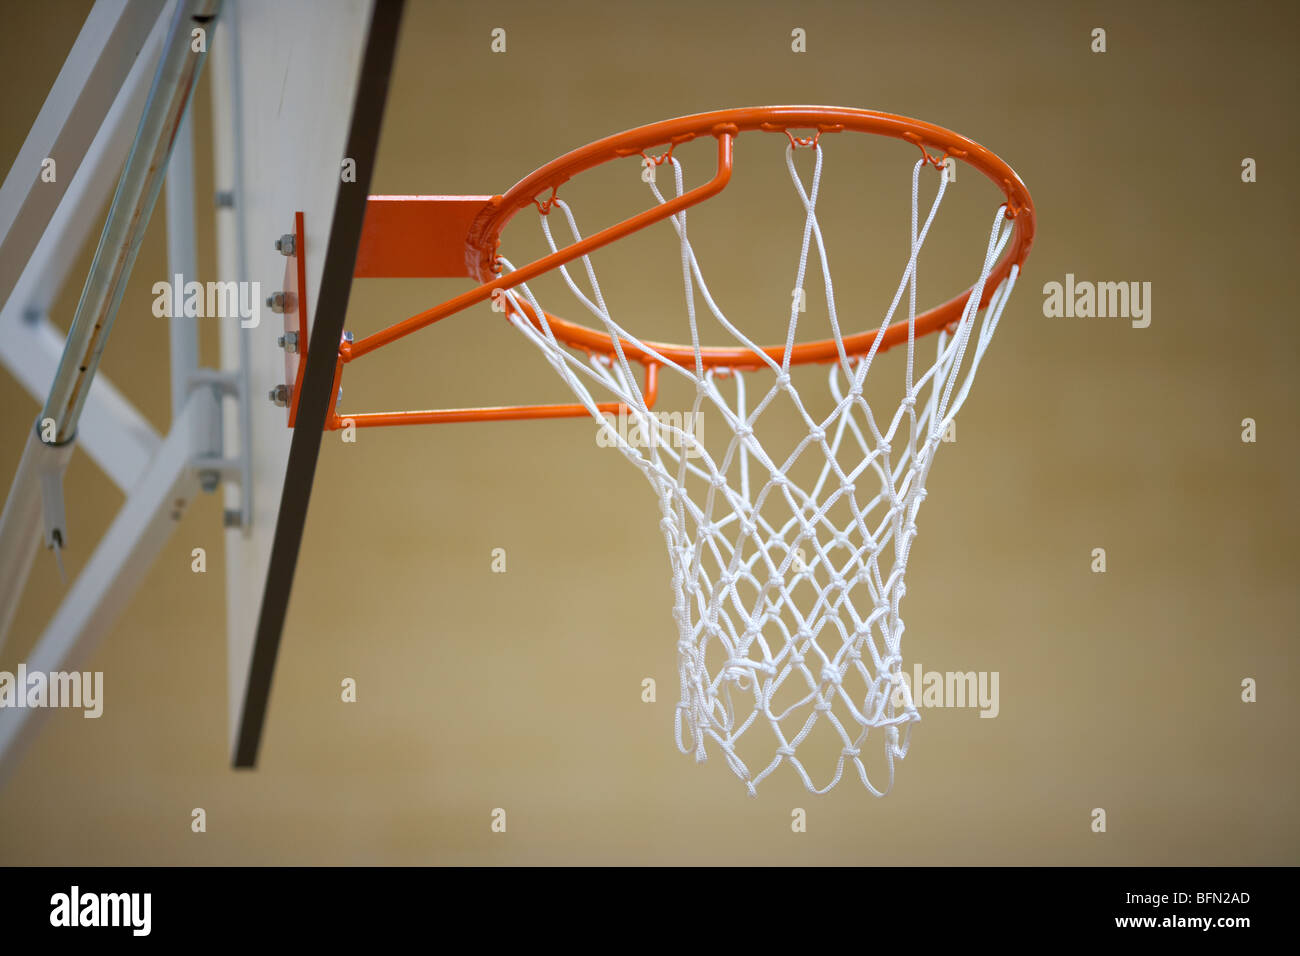 basketball net and frame in a school gym sports hall low angle selective focus Stock Photo